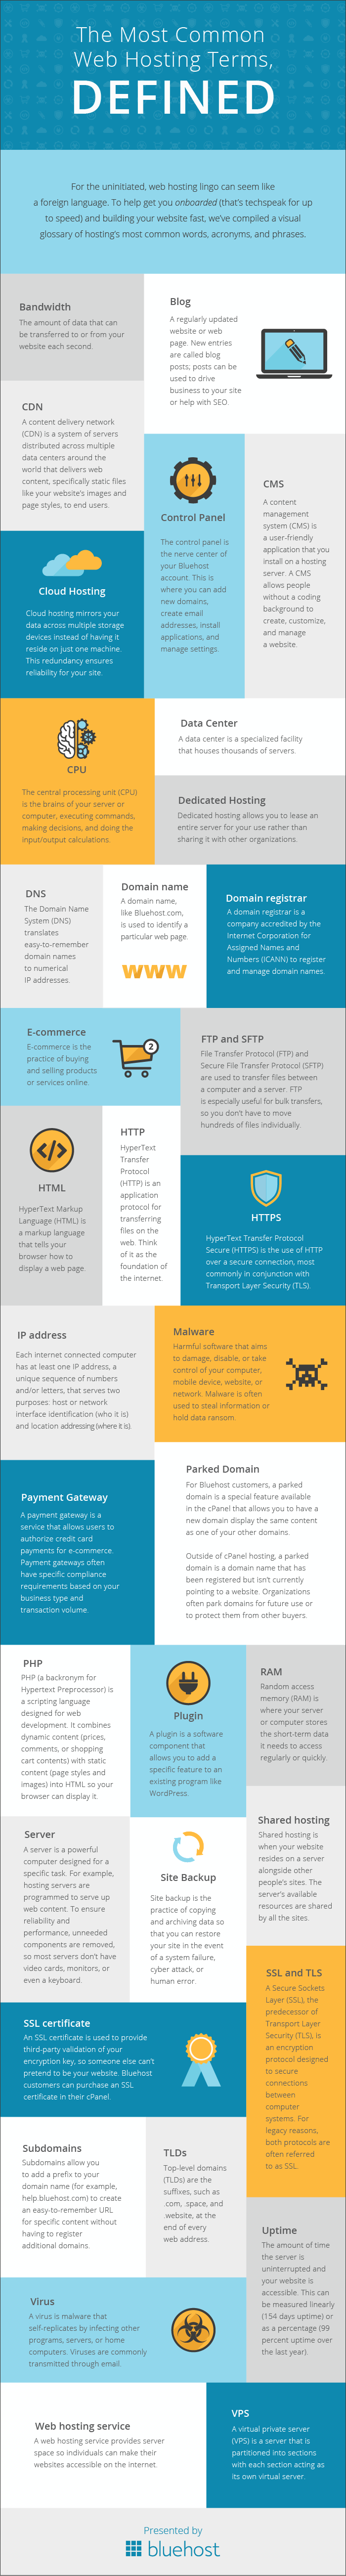 35 Common Web Hosting Terms, Defined - #infographic